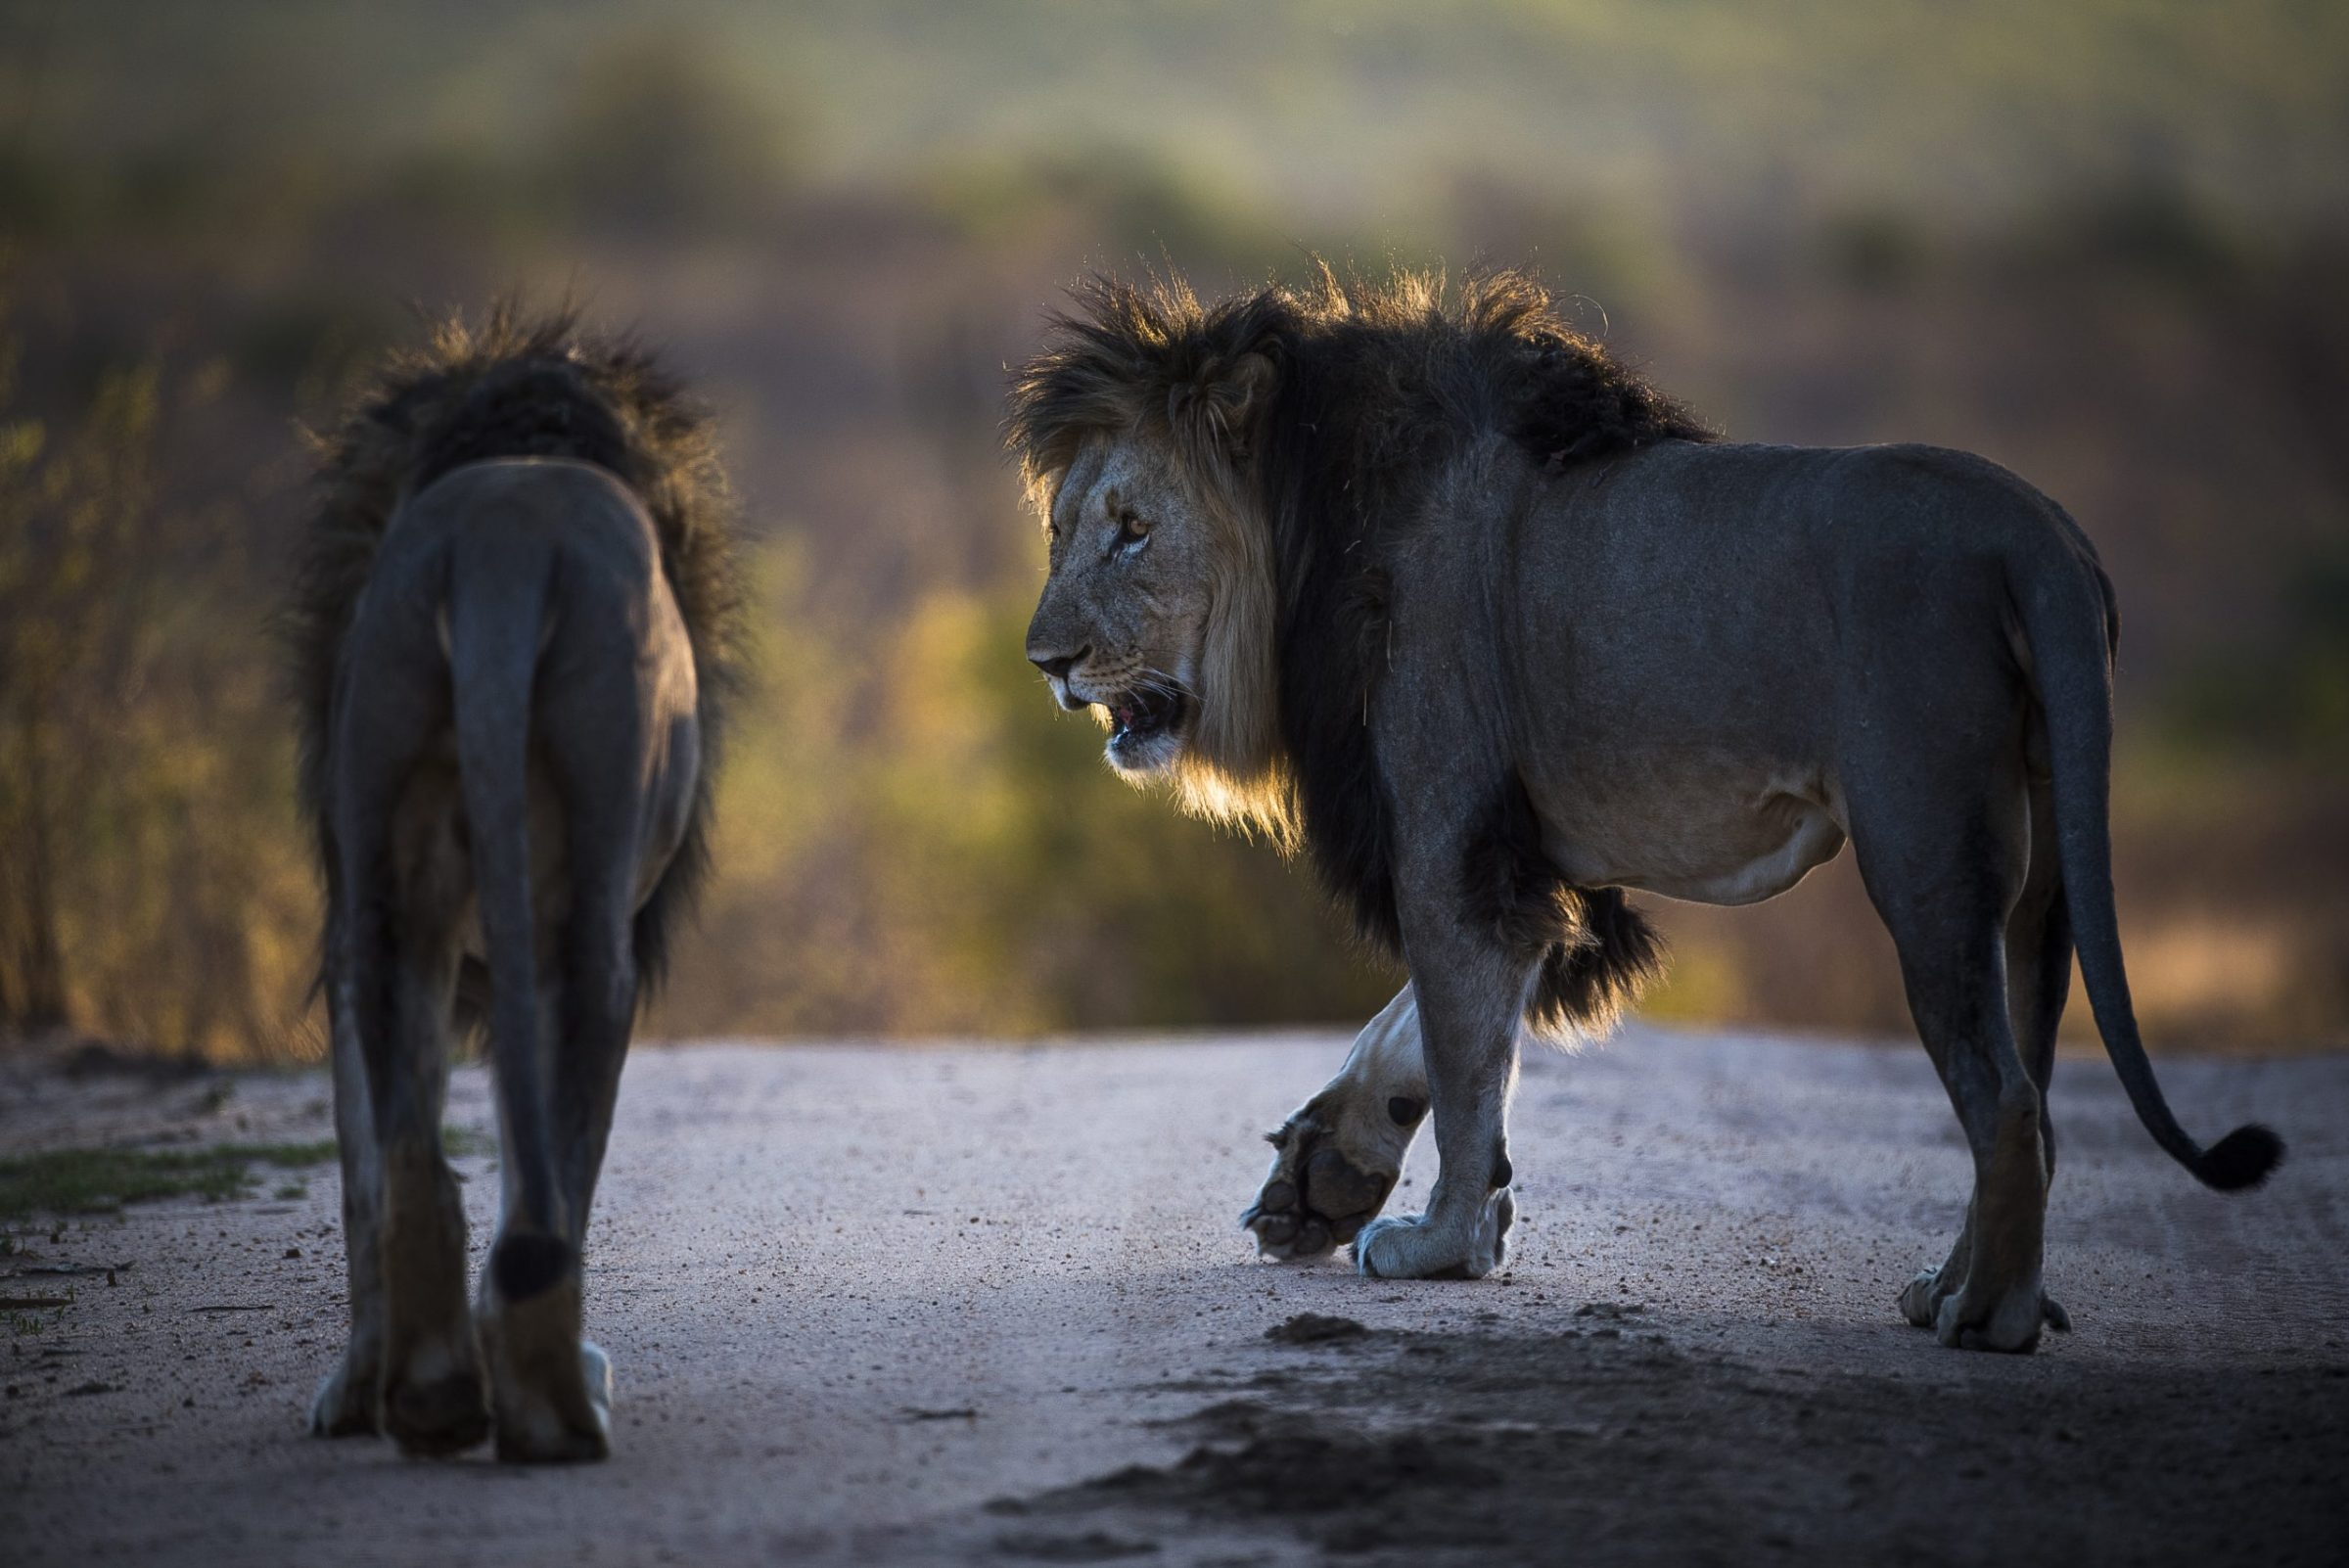 Lion populations in Africa have declined by 43 percent over the past two decades.